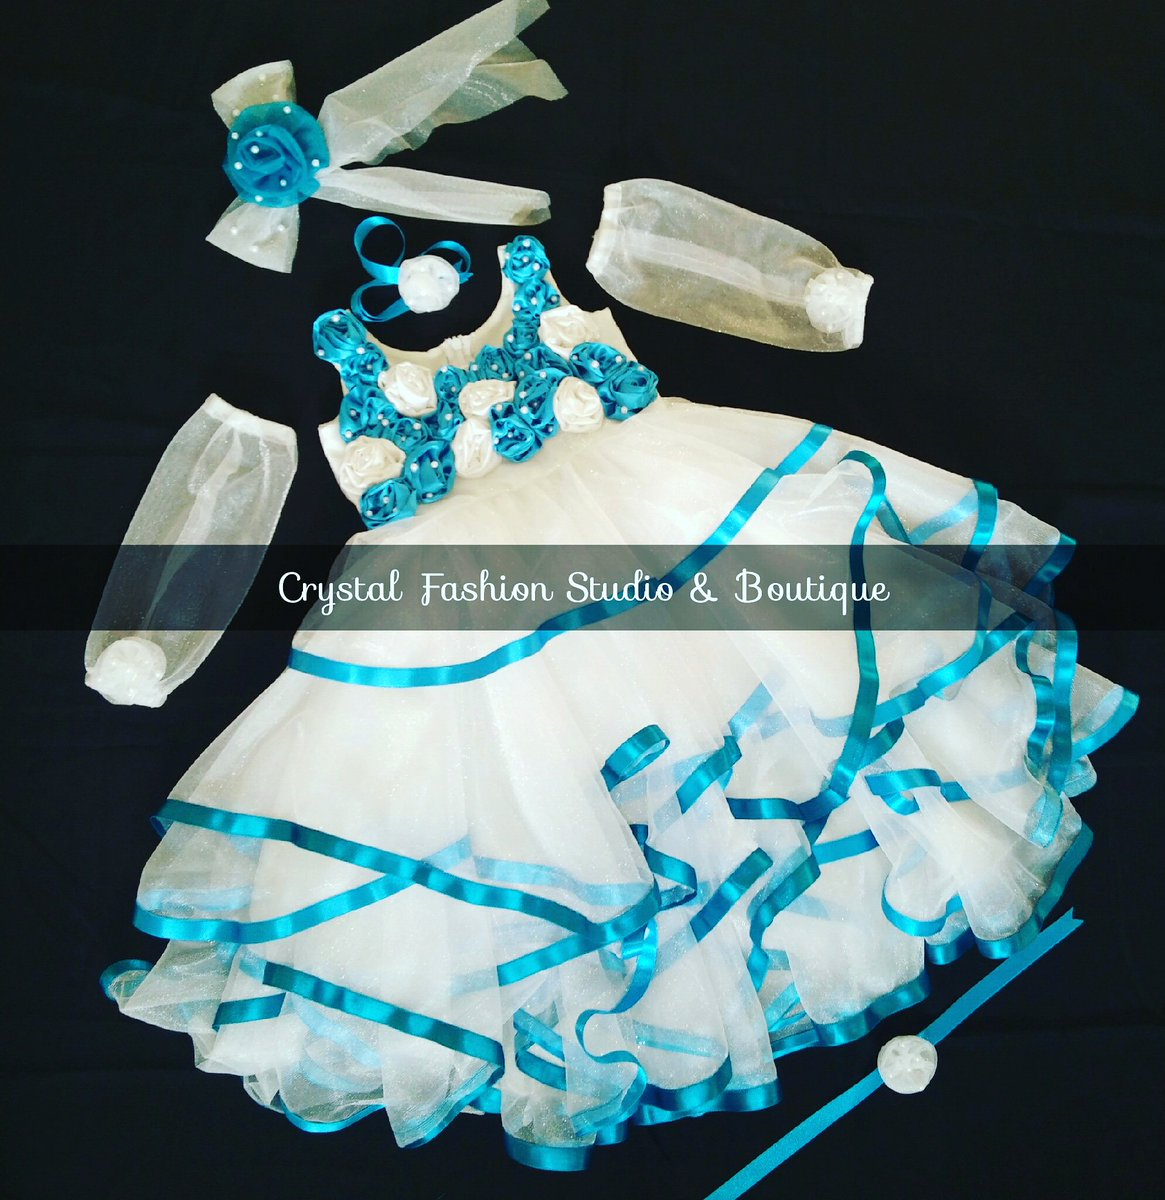 Crystal Fashion Studio Boutique On Twitter Design For Little Princess 1st Birthday Outfit Frozen Princess Happy Client Partywear Gown Littledoll Crystal Crystalfashion Designer Khushbu Raval Design By Crystal Fashion